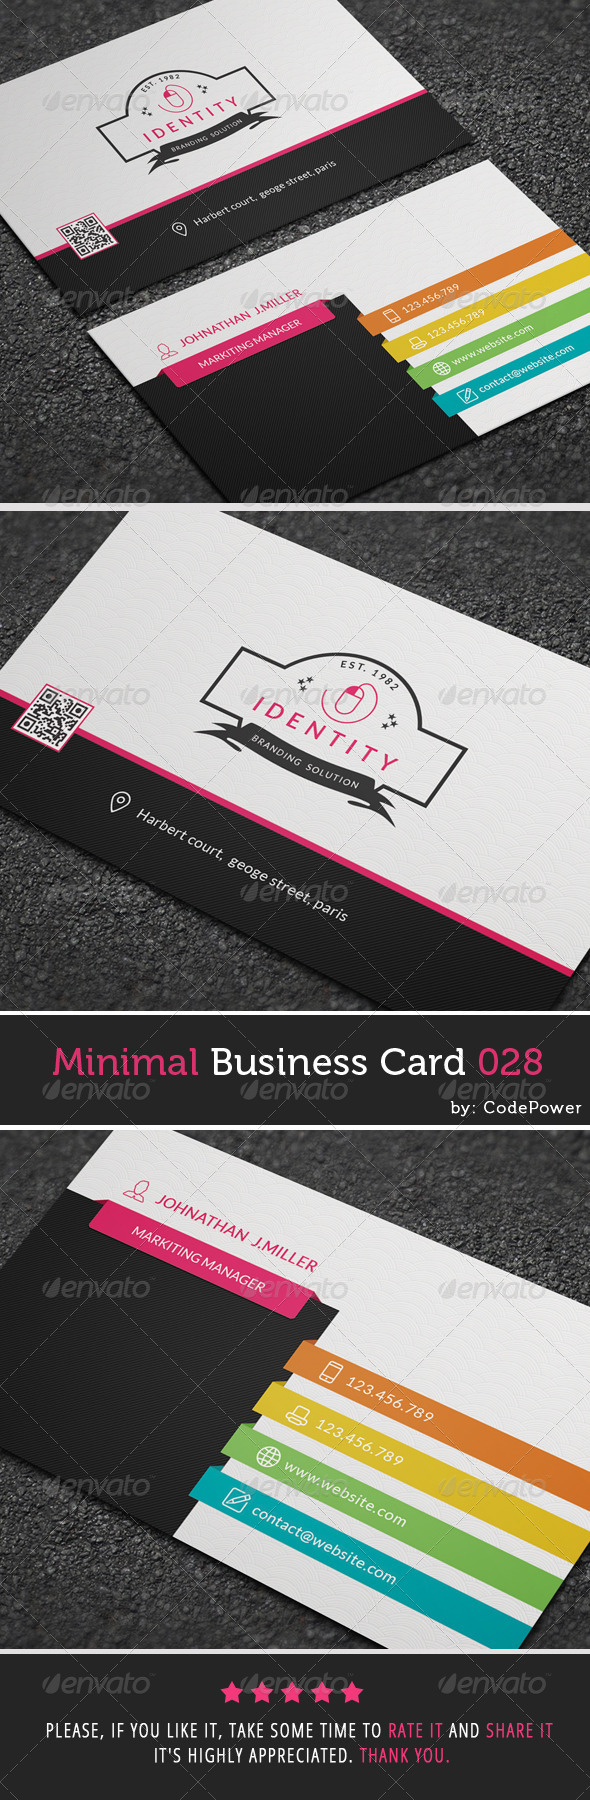 GraphicRiver Minimal Business Card 028 7907216